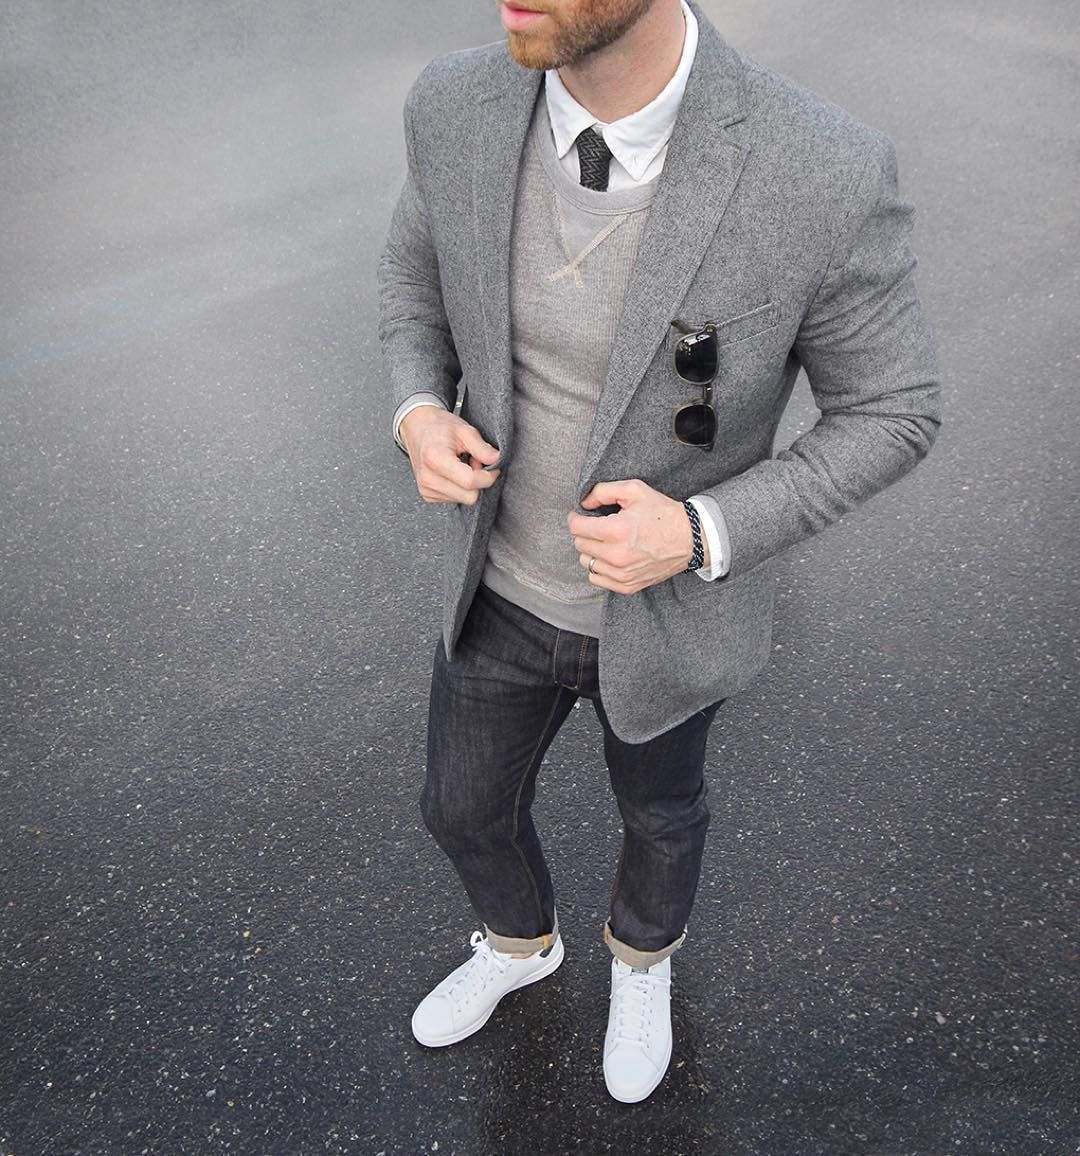 Mens fashion, Smart casual dinner outfit